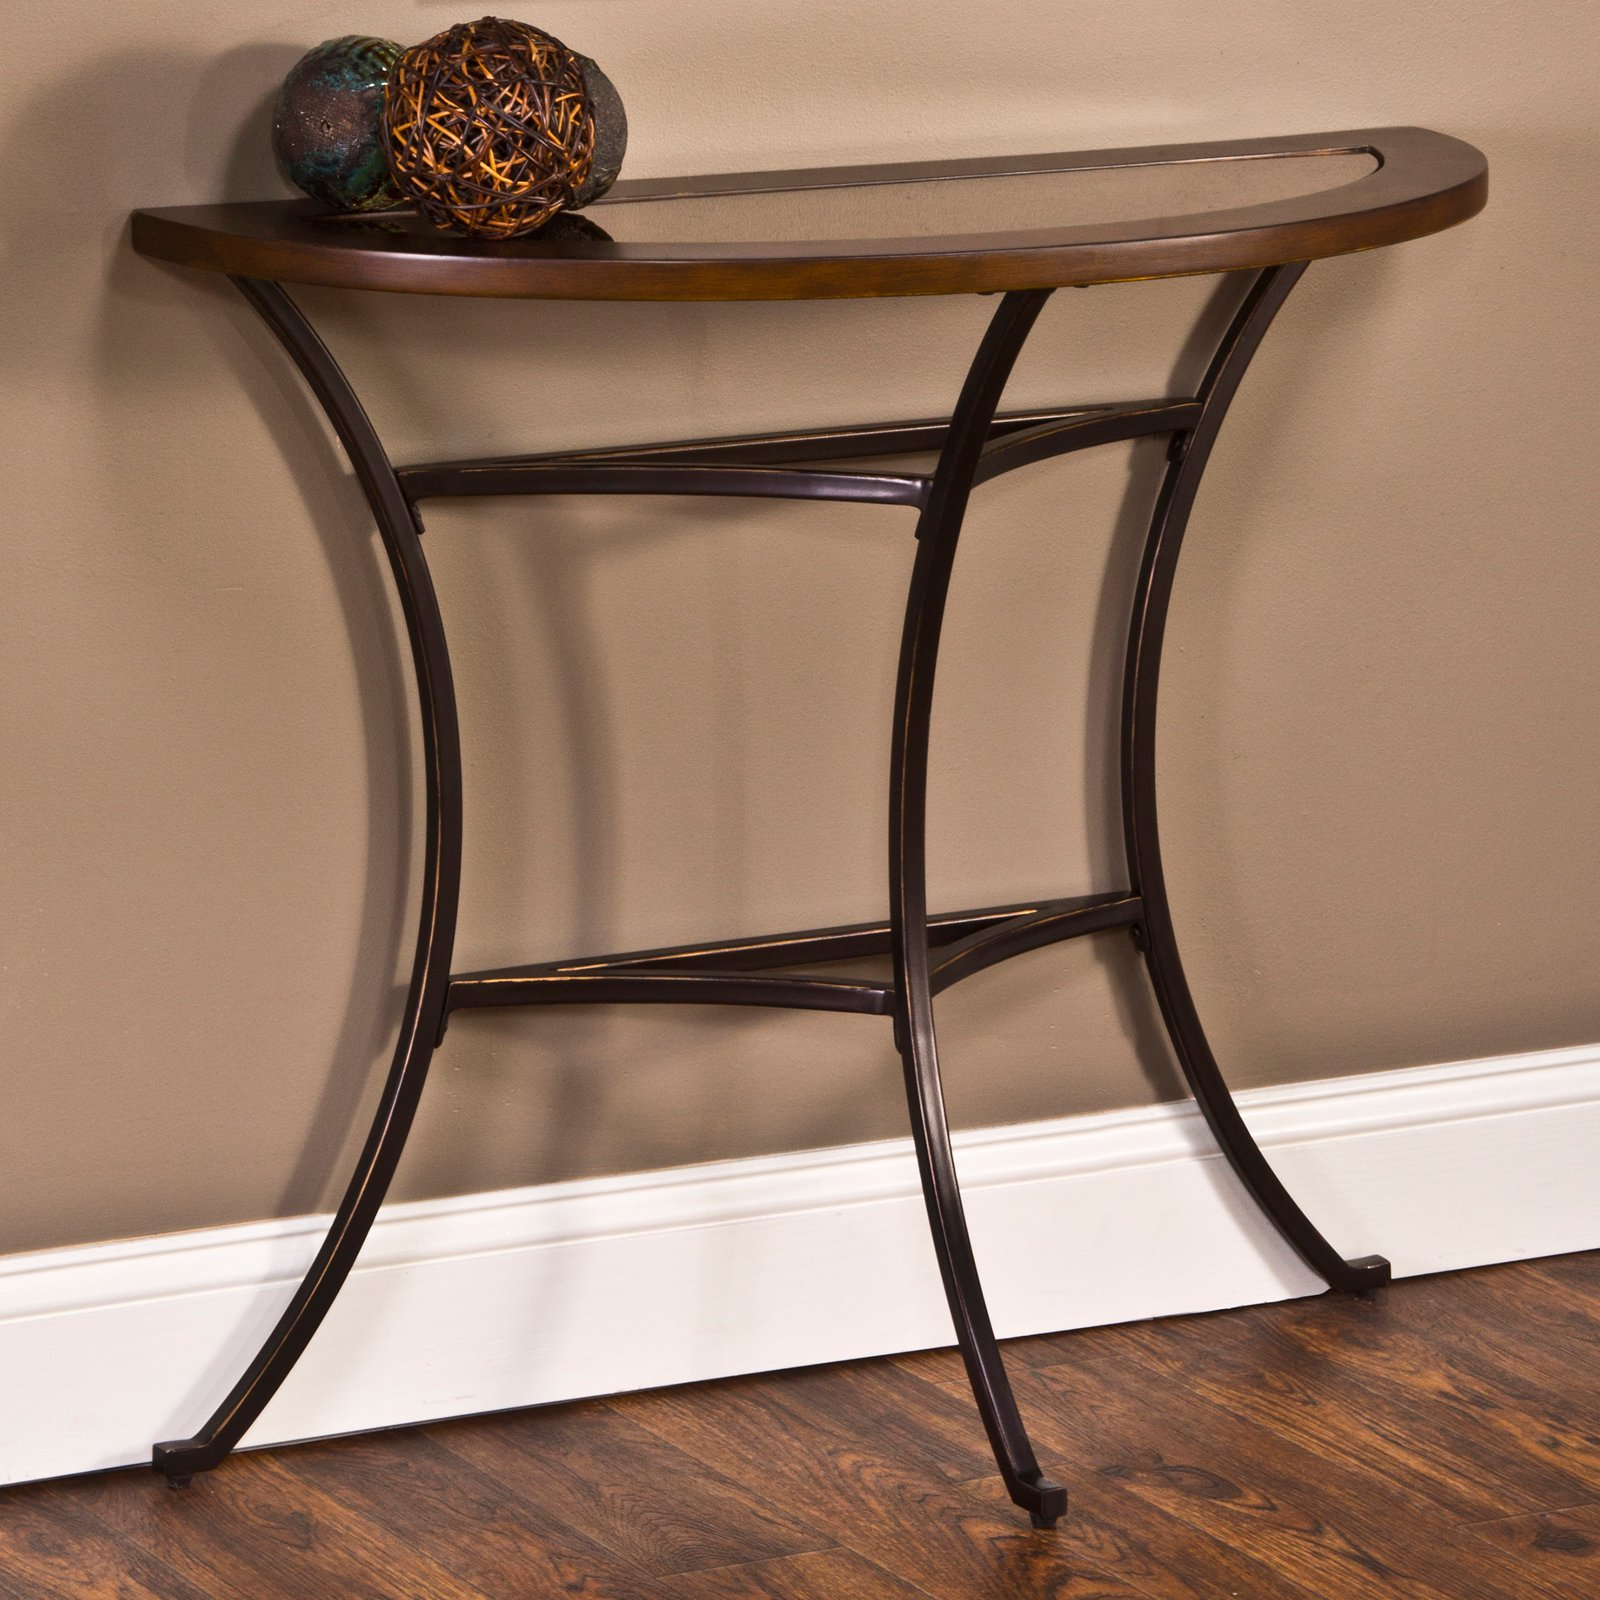 Hillsdale Montclair Console Table by Hillsdale